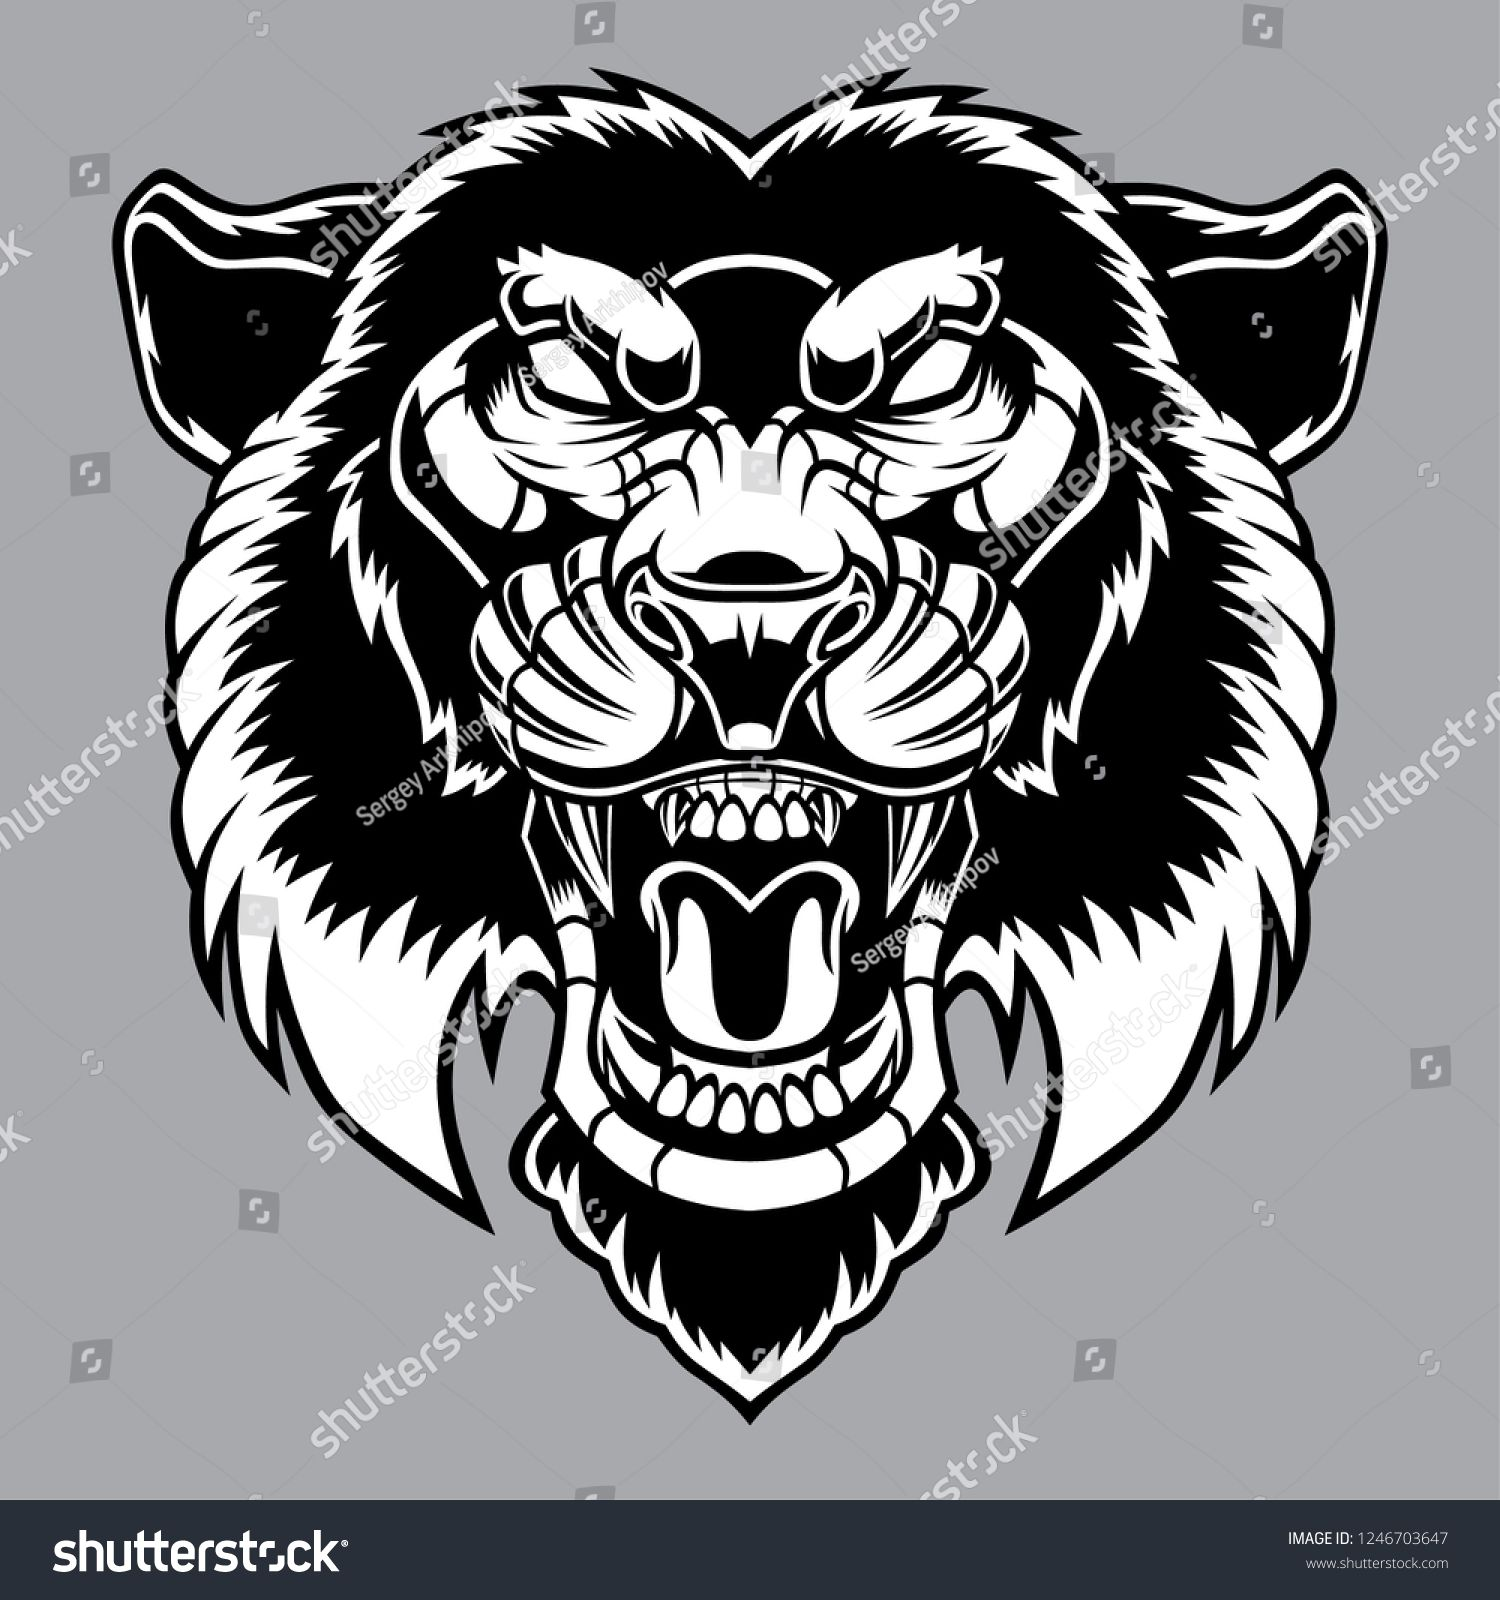 Angry panther head logo. Vector illustration.